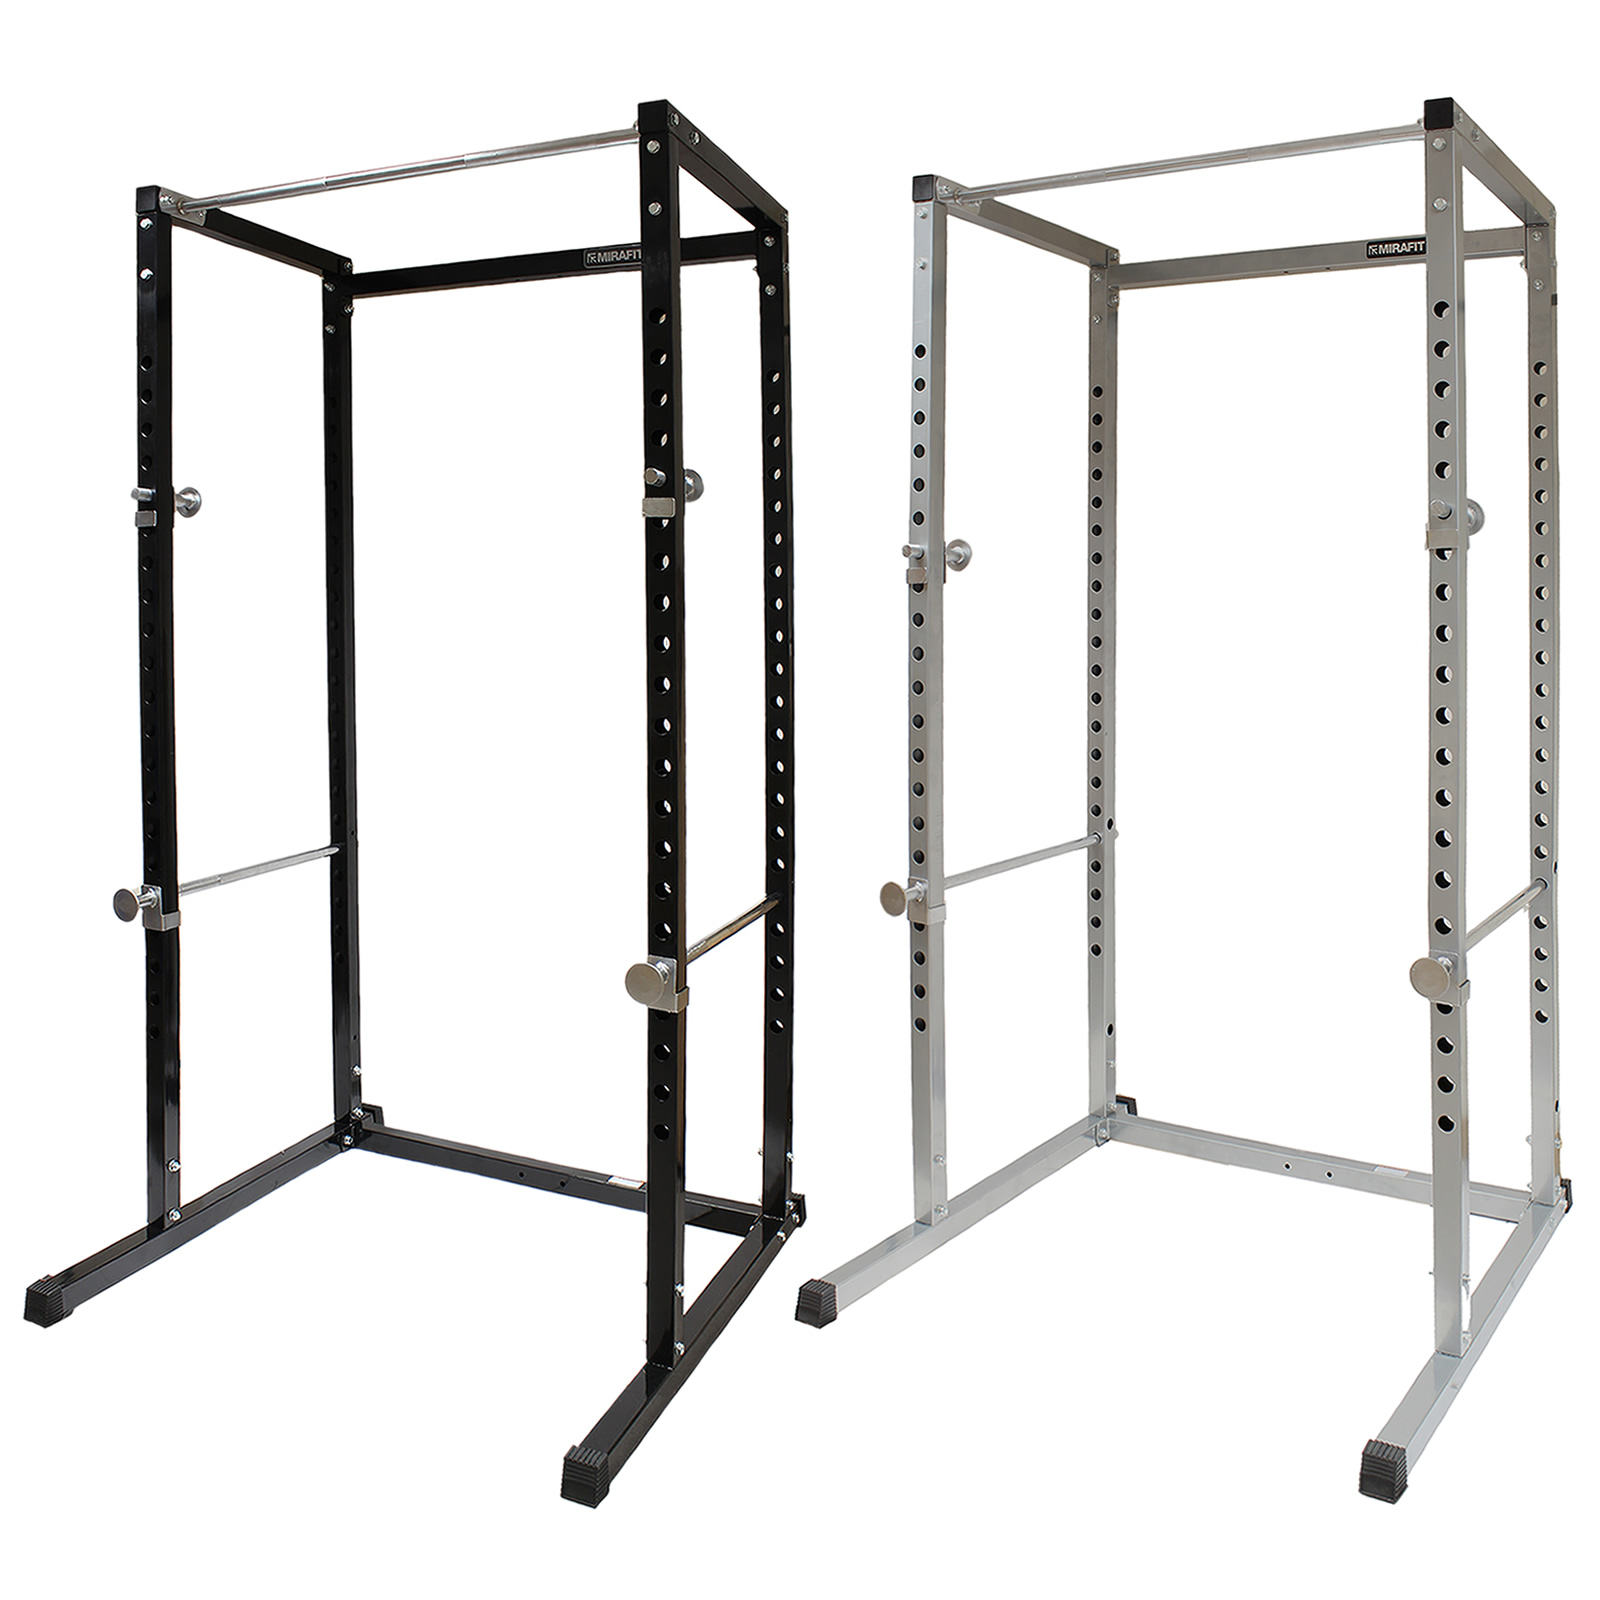 Mirafit power cage squat rack pull up bar multi gym for A squat rack